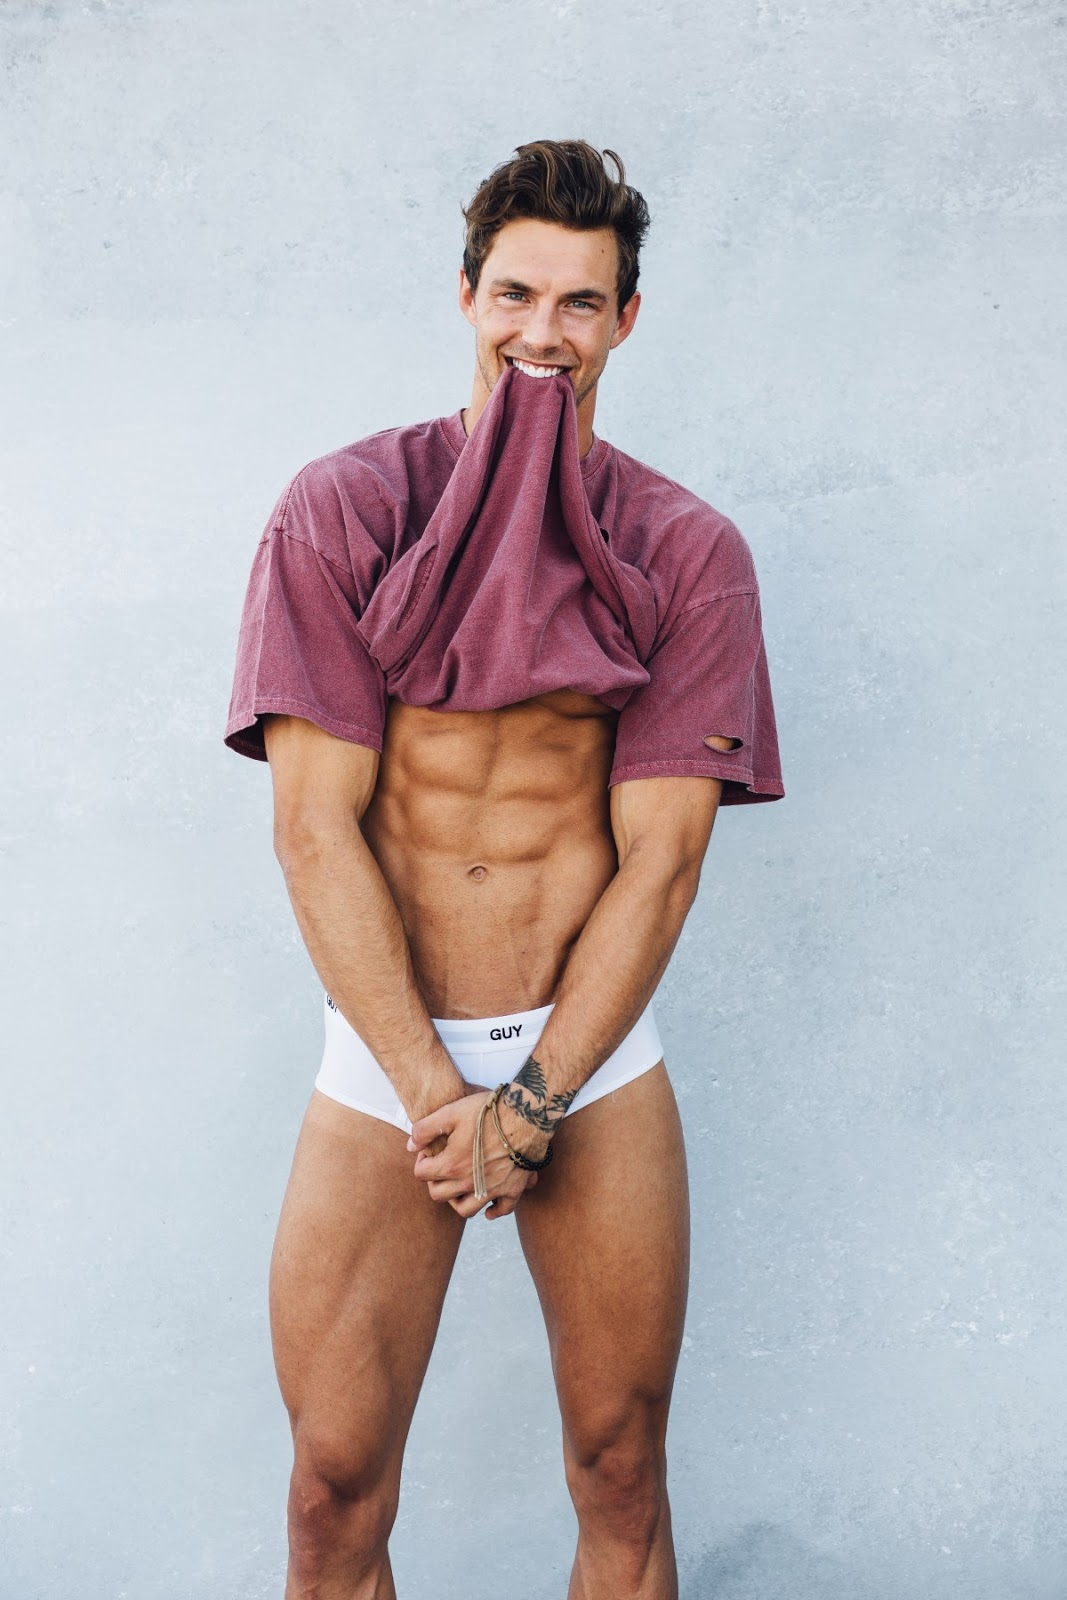 christian-hogue-by-taylor-miller3